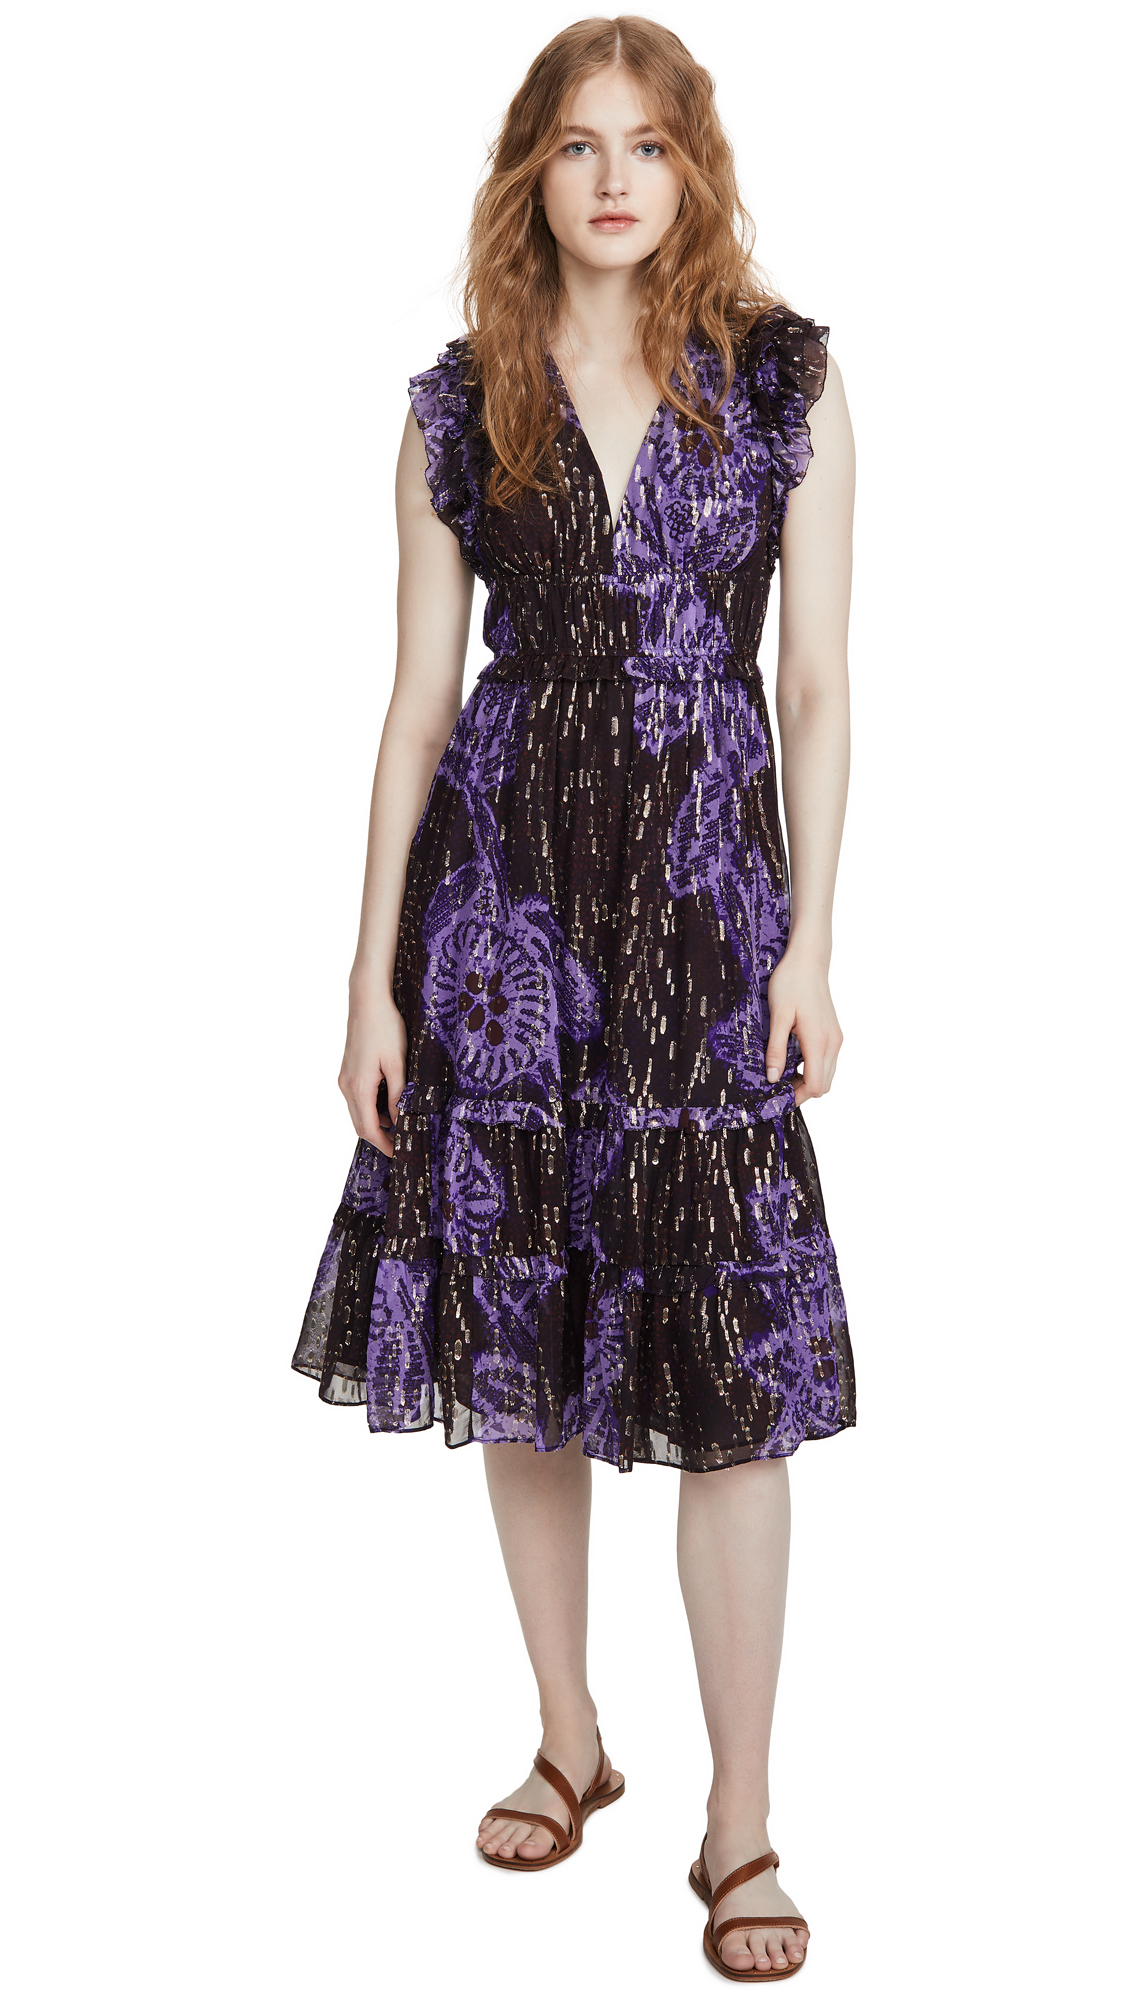 Ulla Johnson Akira Dress - 50% Off Sale